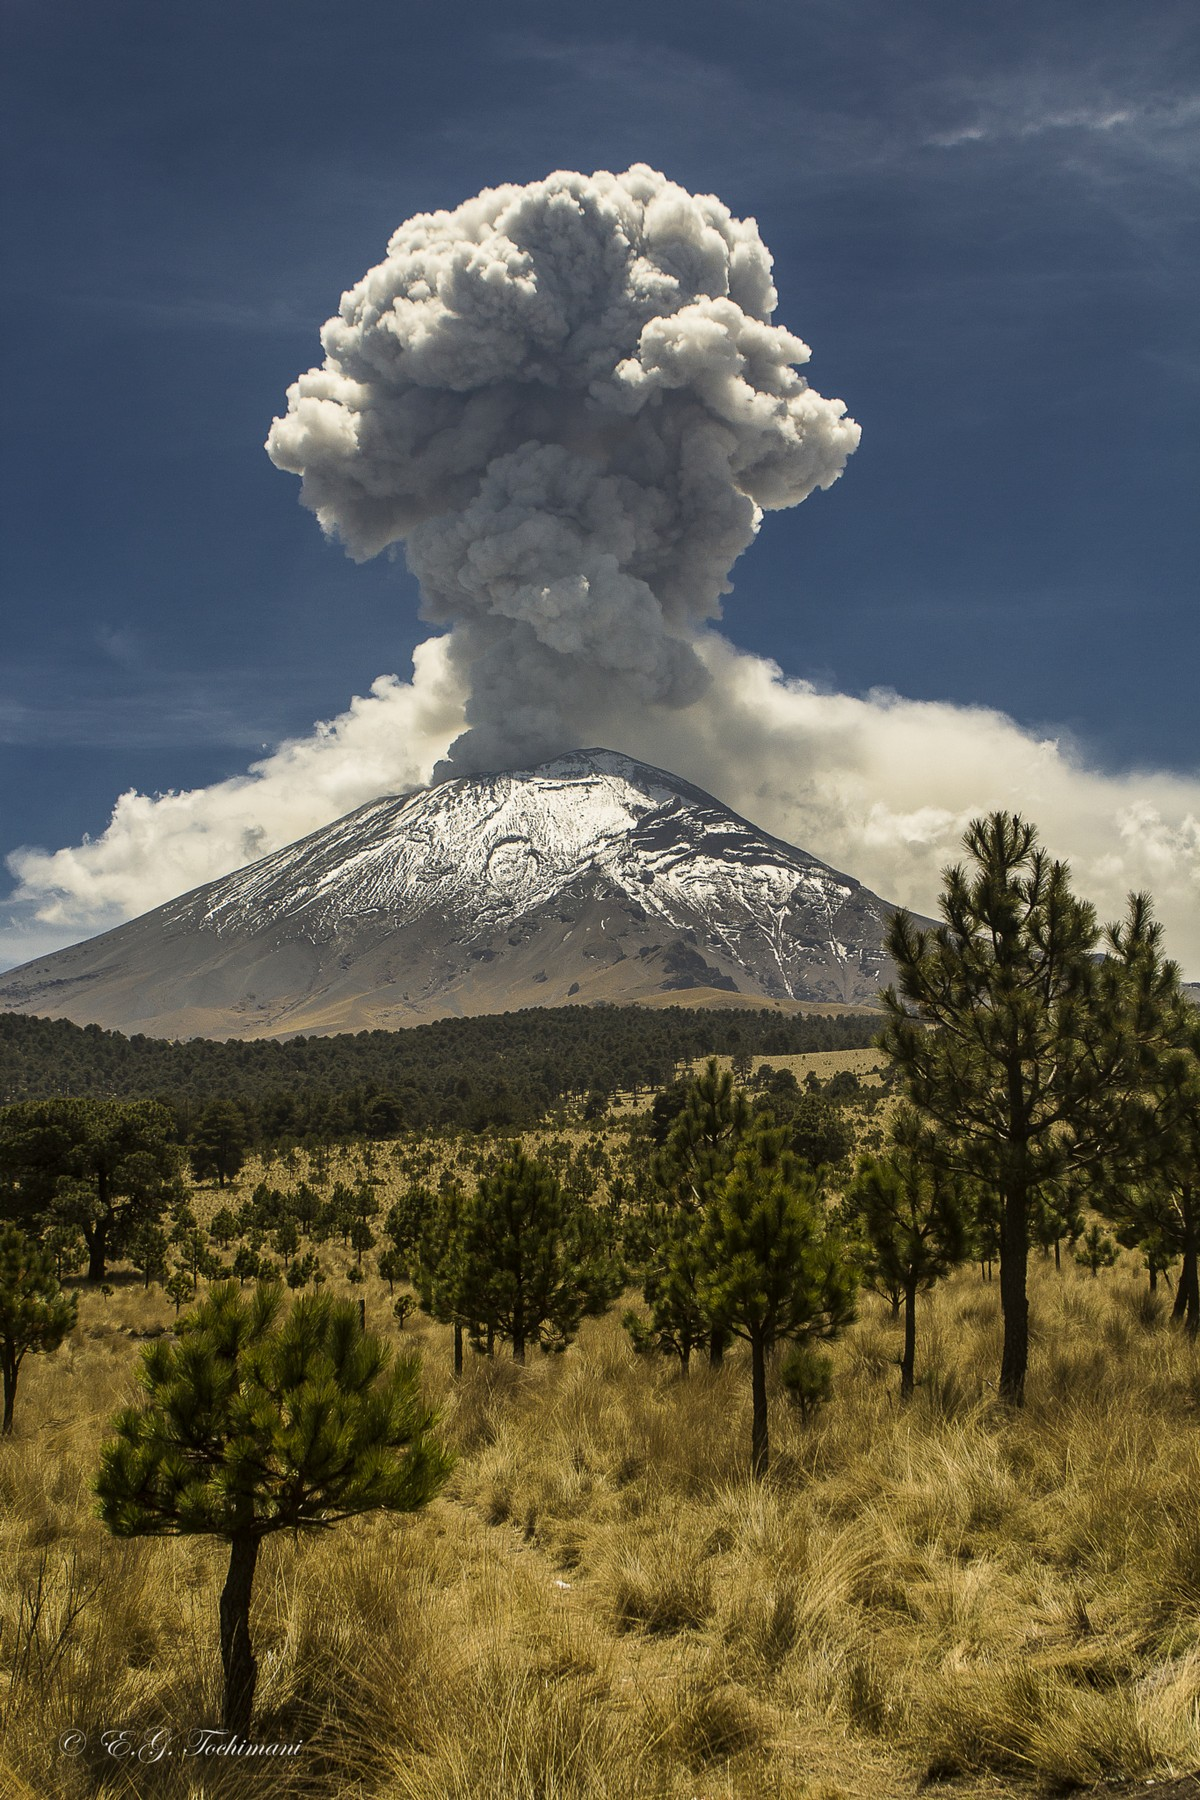 Stunning pictures of volcanoes Eric Gomez Tokimune 16